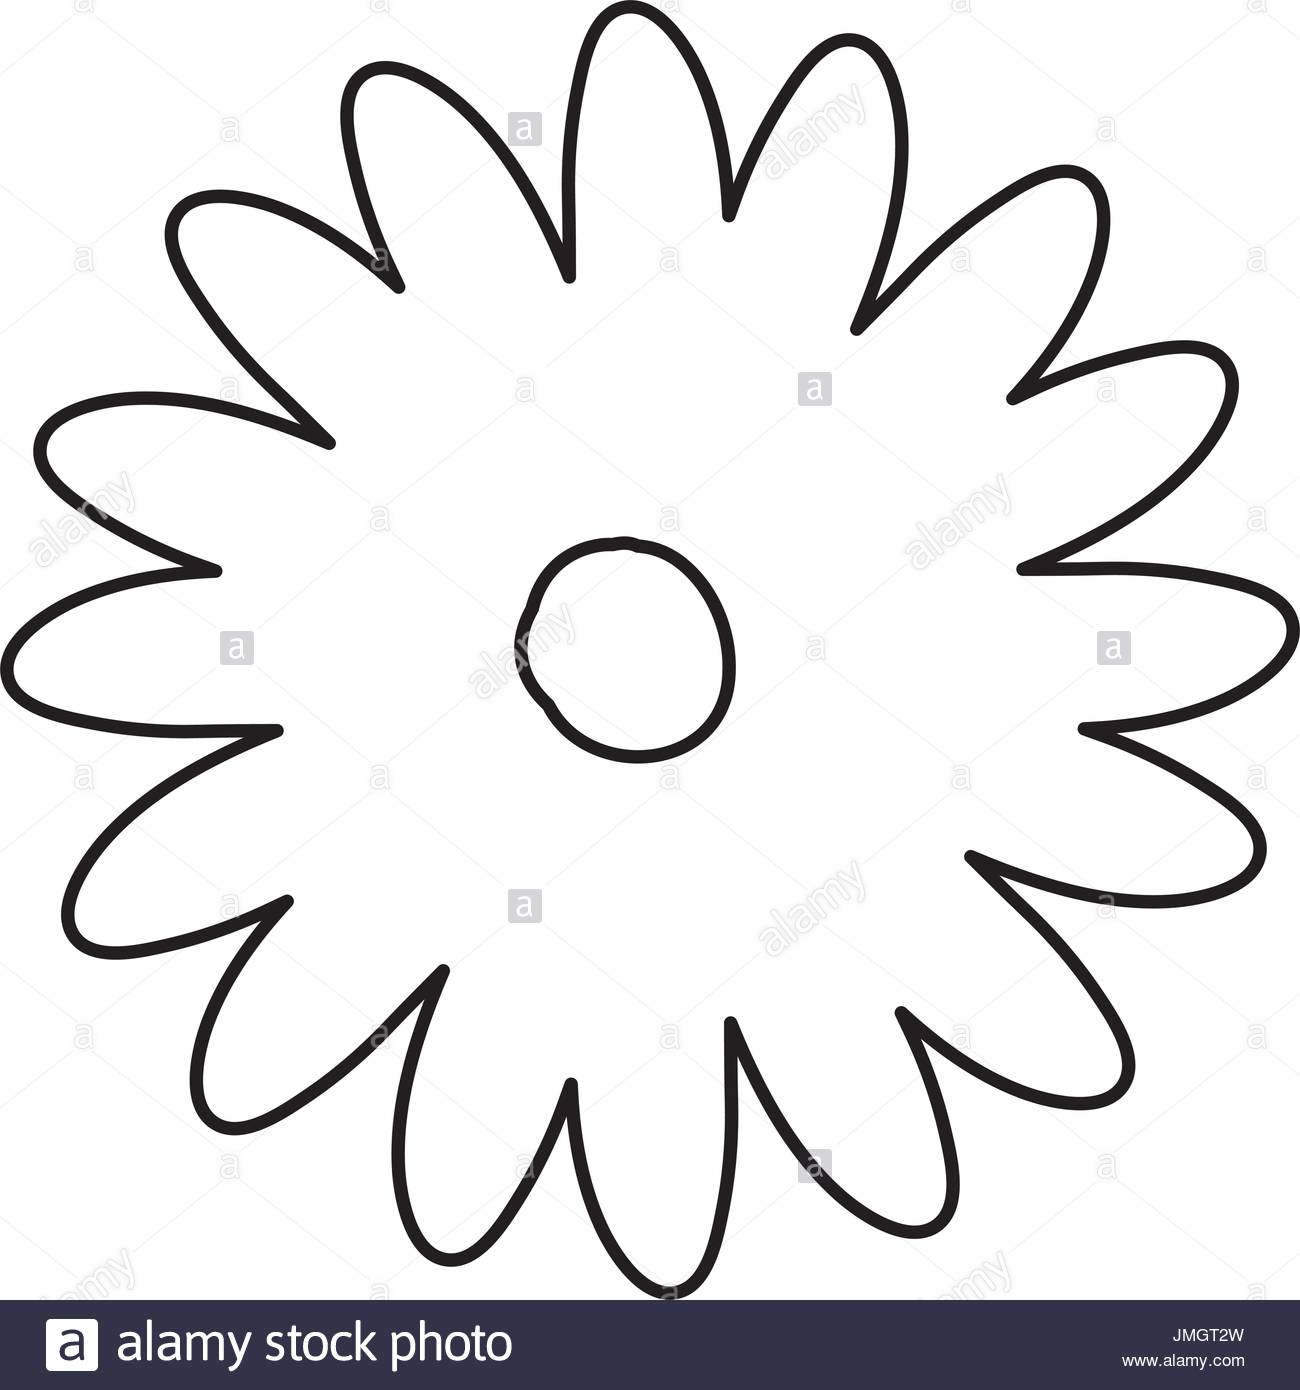 1300x1390 Sketch Contour Of Hand Drawing Daisy Flower With Several Petals